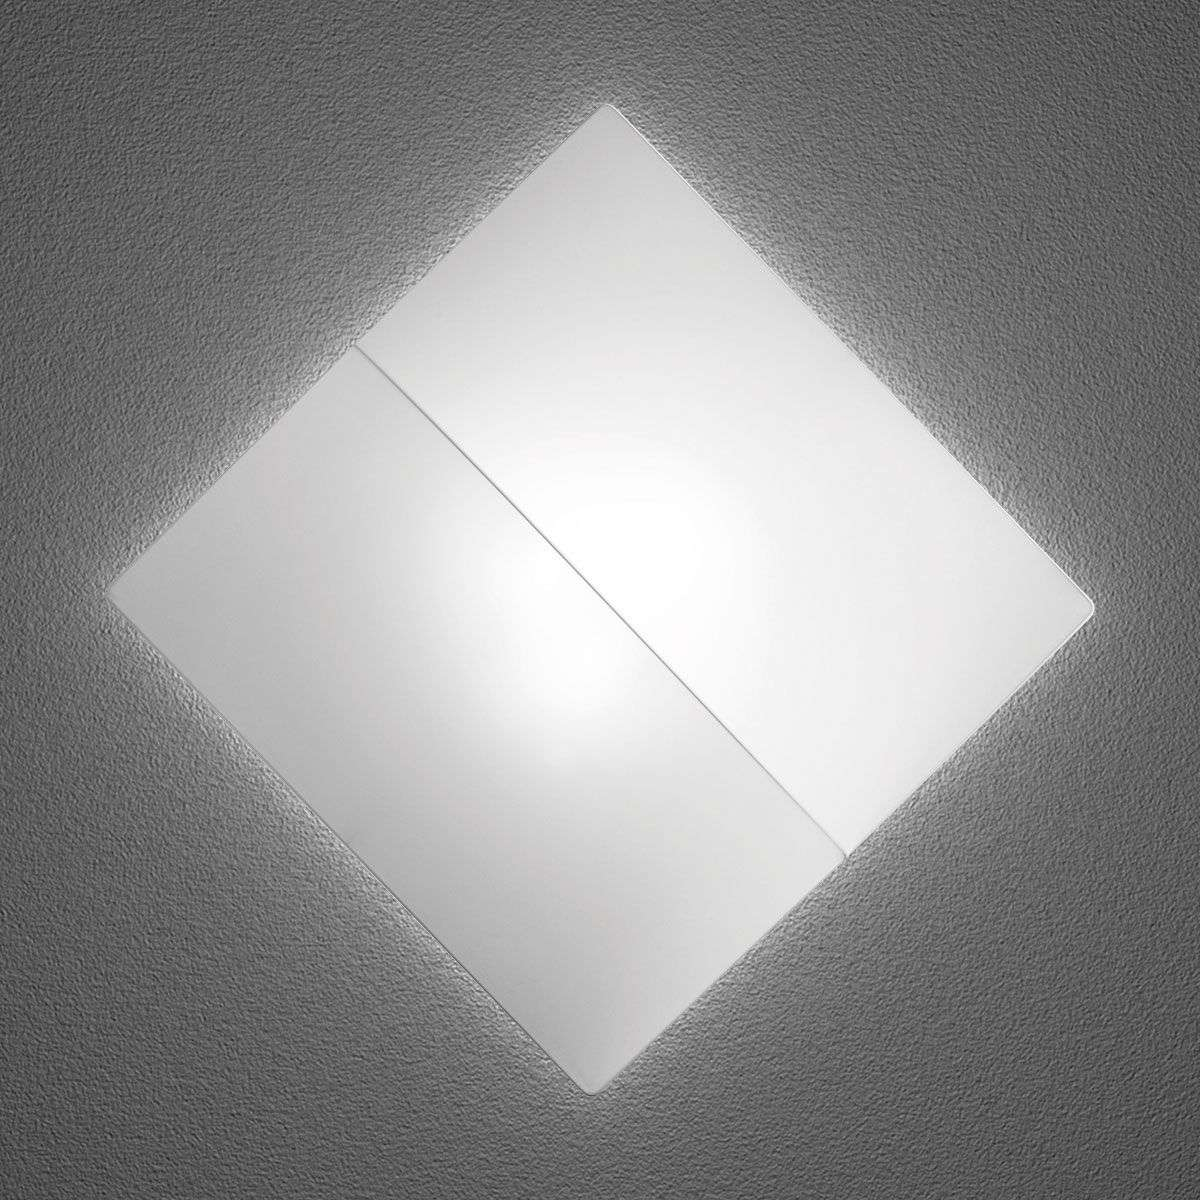 Nelly S square wall light with fabric-1088024X-31